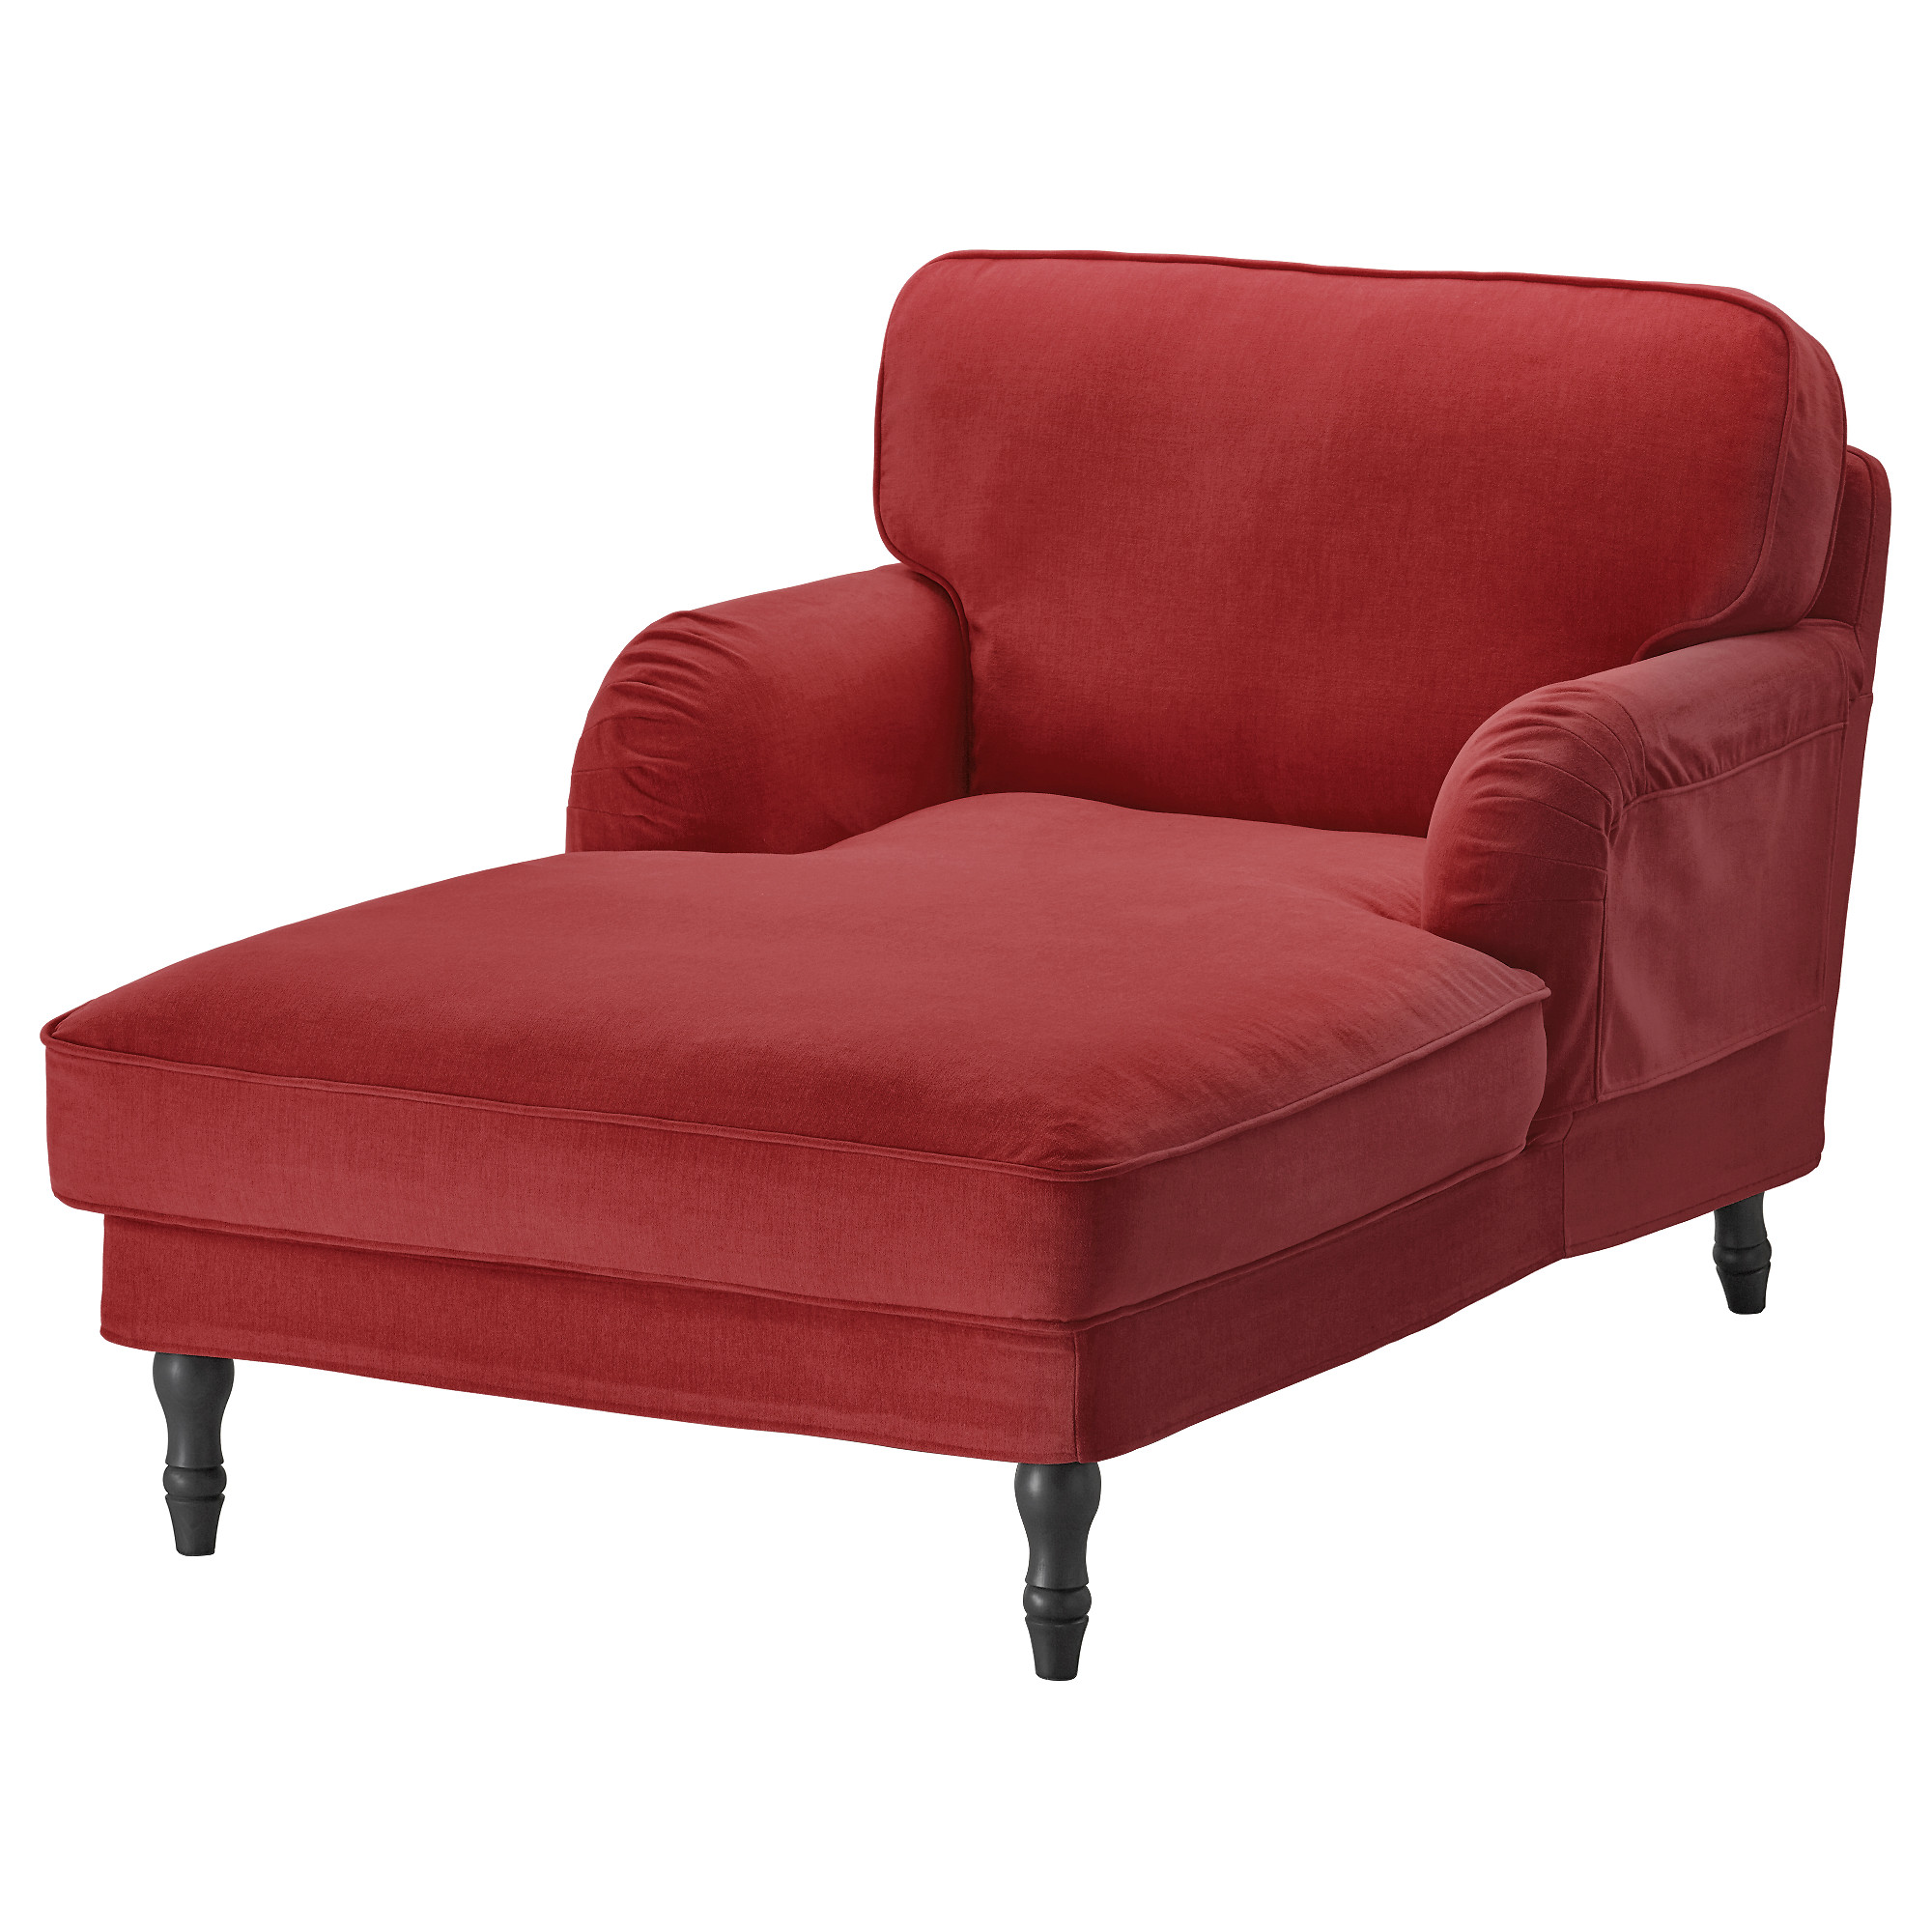 Pics for chaise lounge sofa ikea - Chaise longue jardin ikea ...